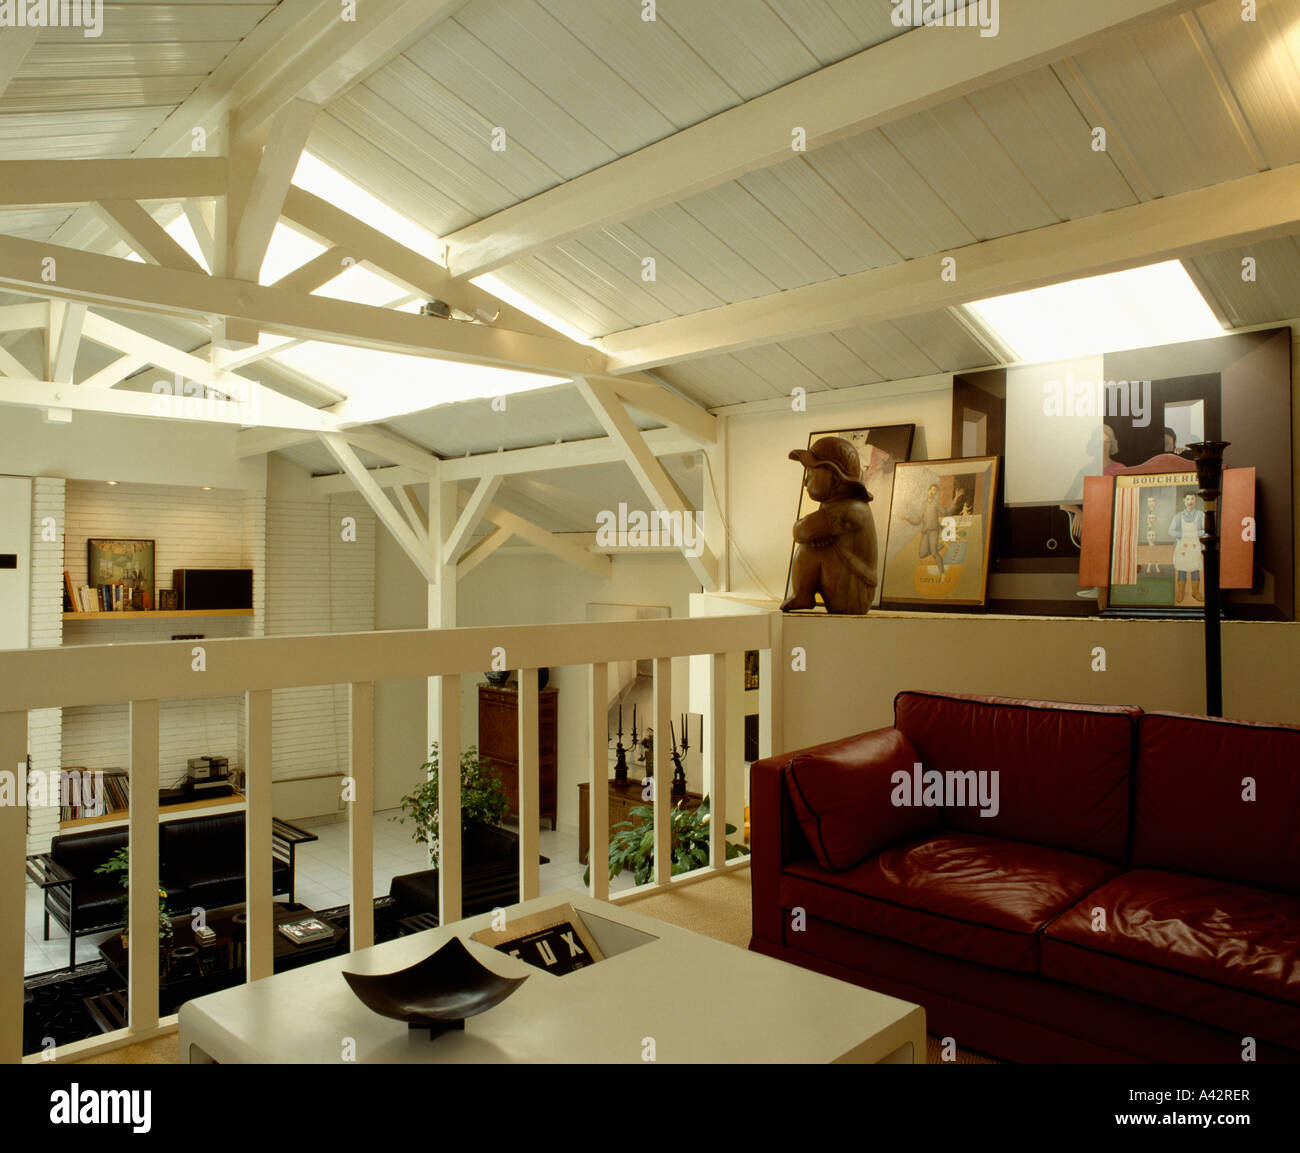 Mezzanine Loft Conversion brown leather sofa on mezzanine in loft conversion apartment with